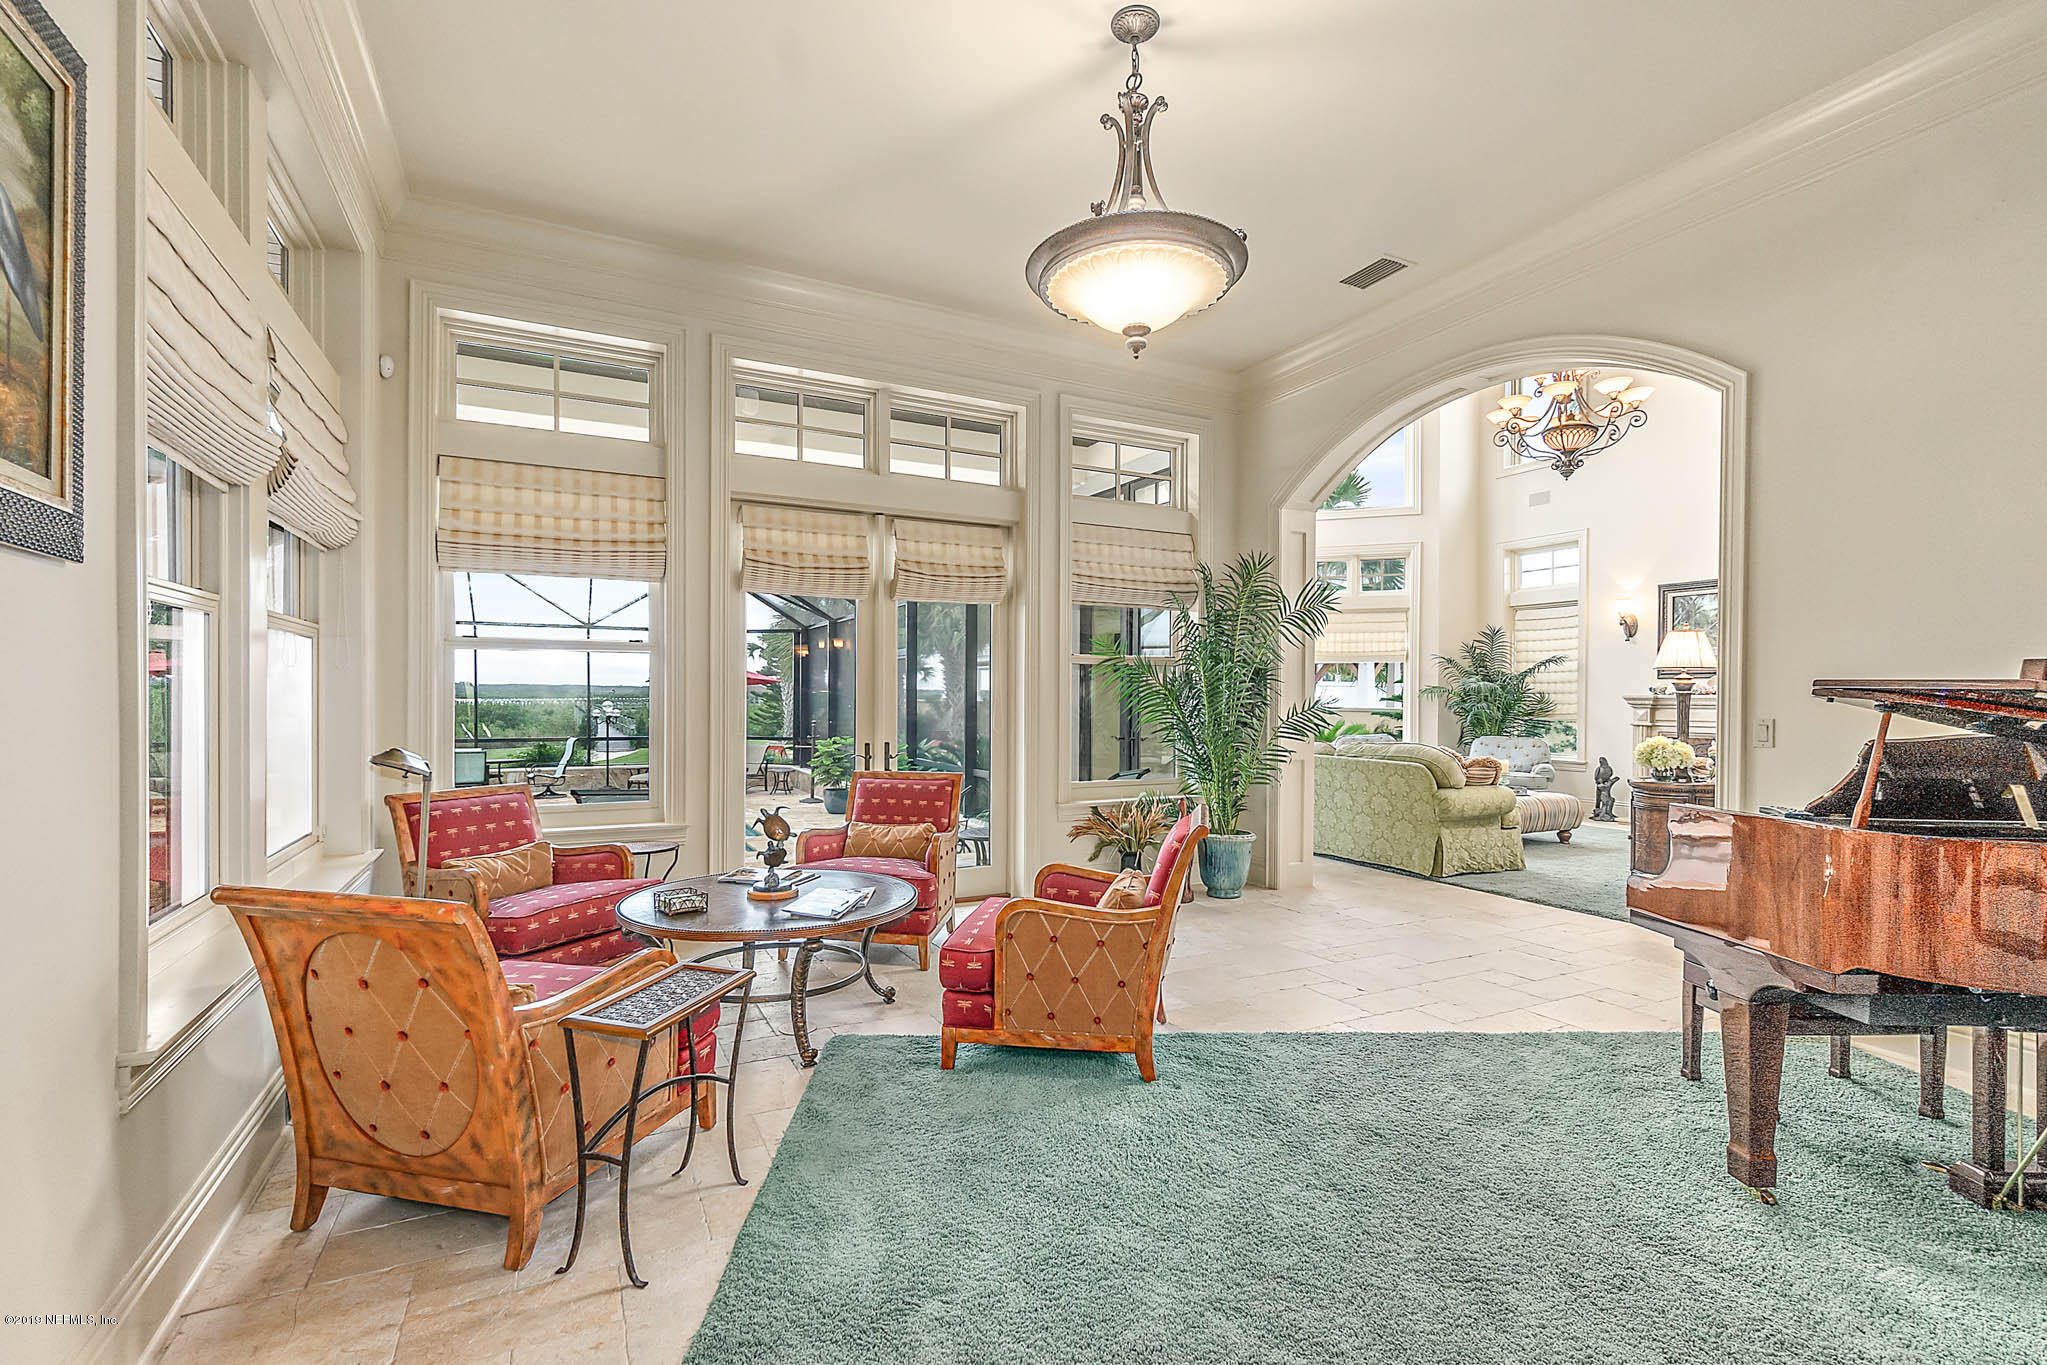 7965 A1A, ST AUGUSTINE, FLORIDA 32080, 5 Bedrooms Bedrooms, ,5 BathroomsBathrooms,Residential,For sale,A1A,1082845